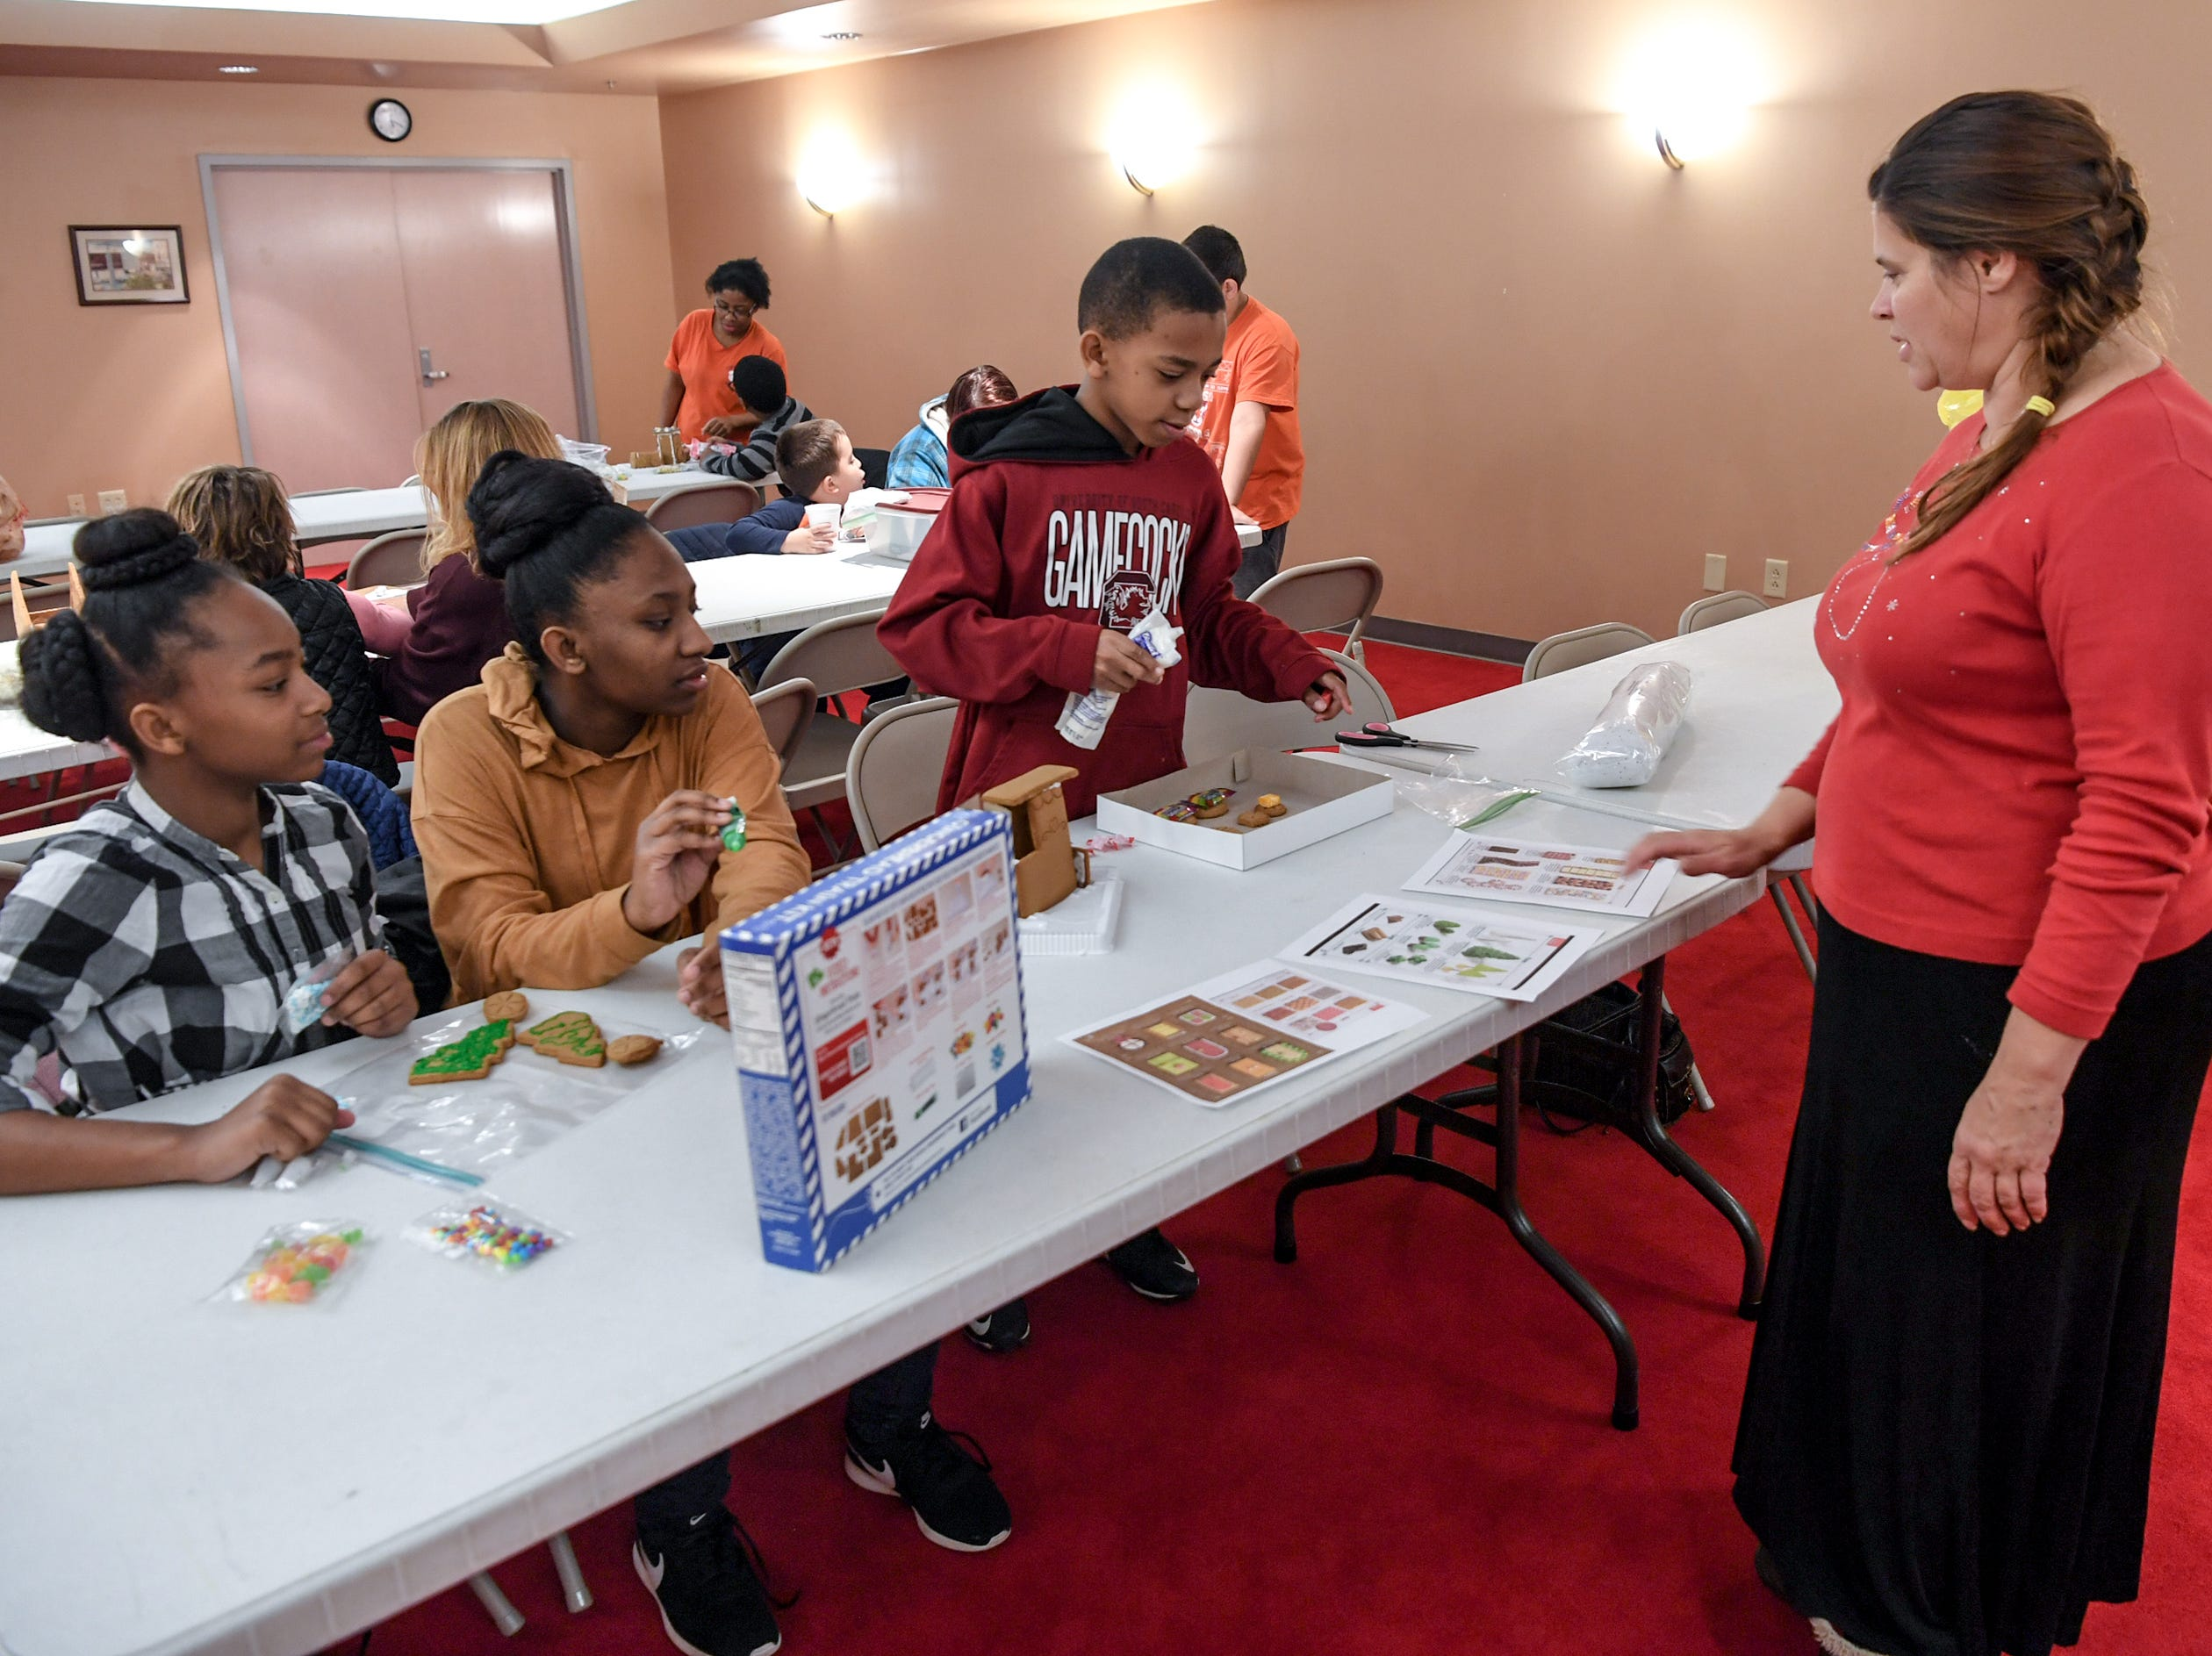 Carrie Kolb, right, a program specialist for Big Brothers Big Sisters of the Upstate, works with Tamara Finley, left, Breanna Finley, and Branddon Finley getting started during a gingerbread house decorating party at the Anderson County Museum in Anderson on Tuesday.